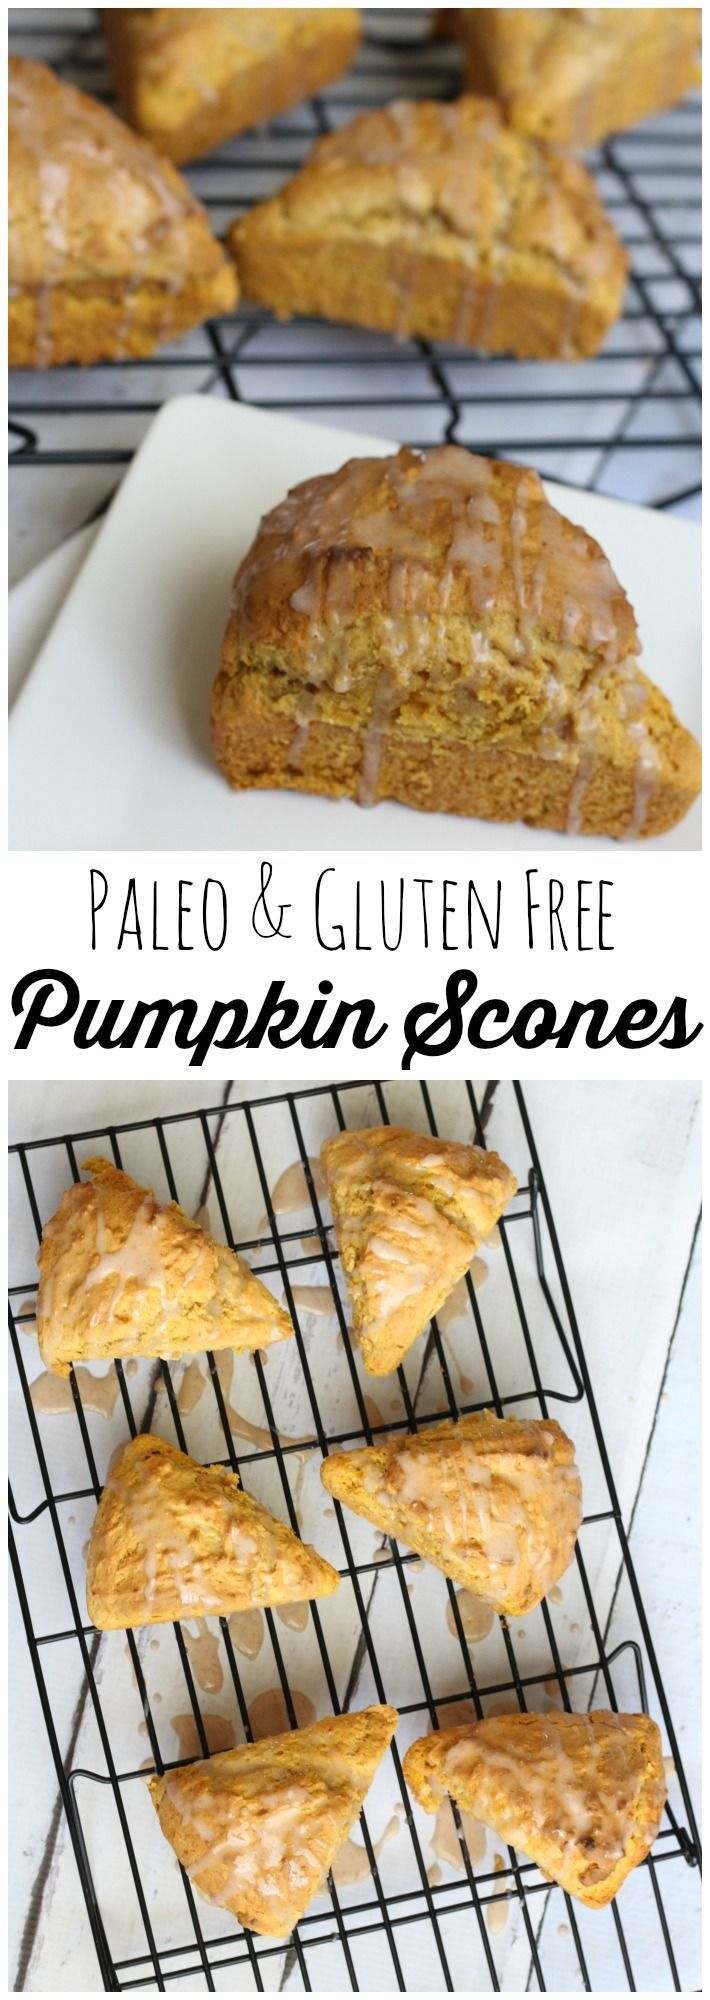 This paleo grain free pumpkin scone recipe is a family favorite. I also share…